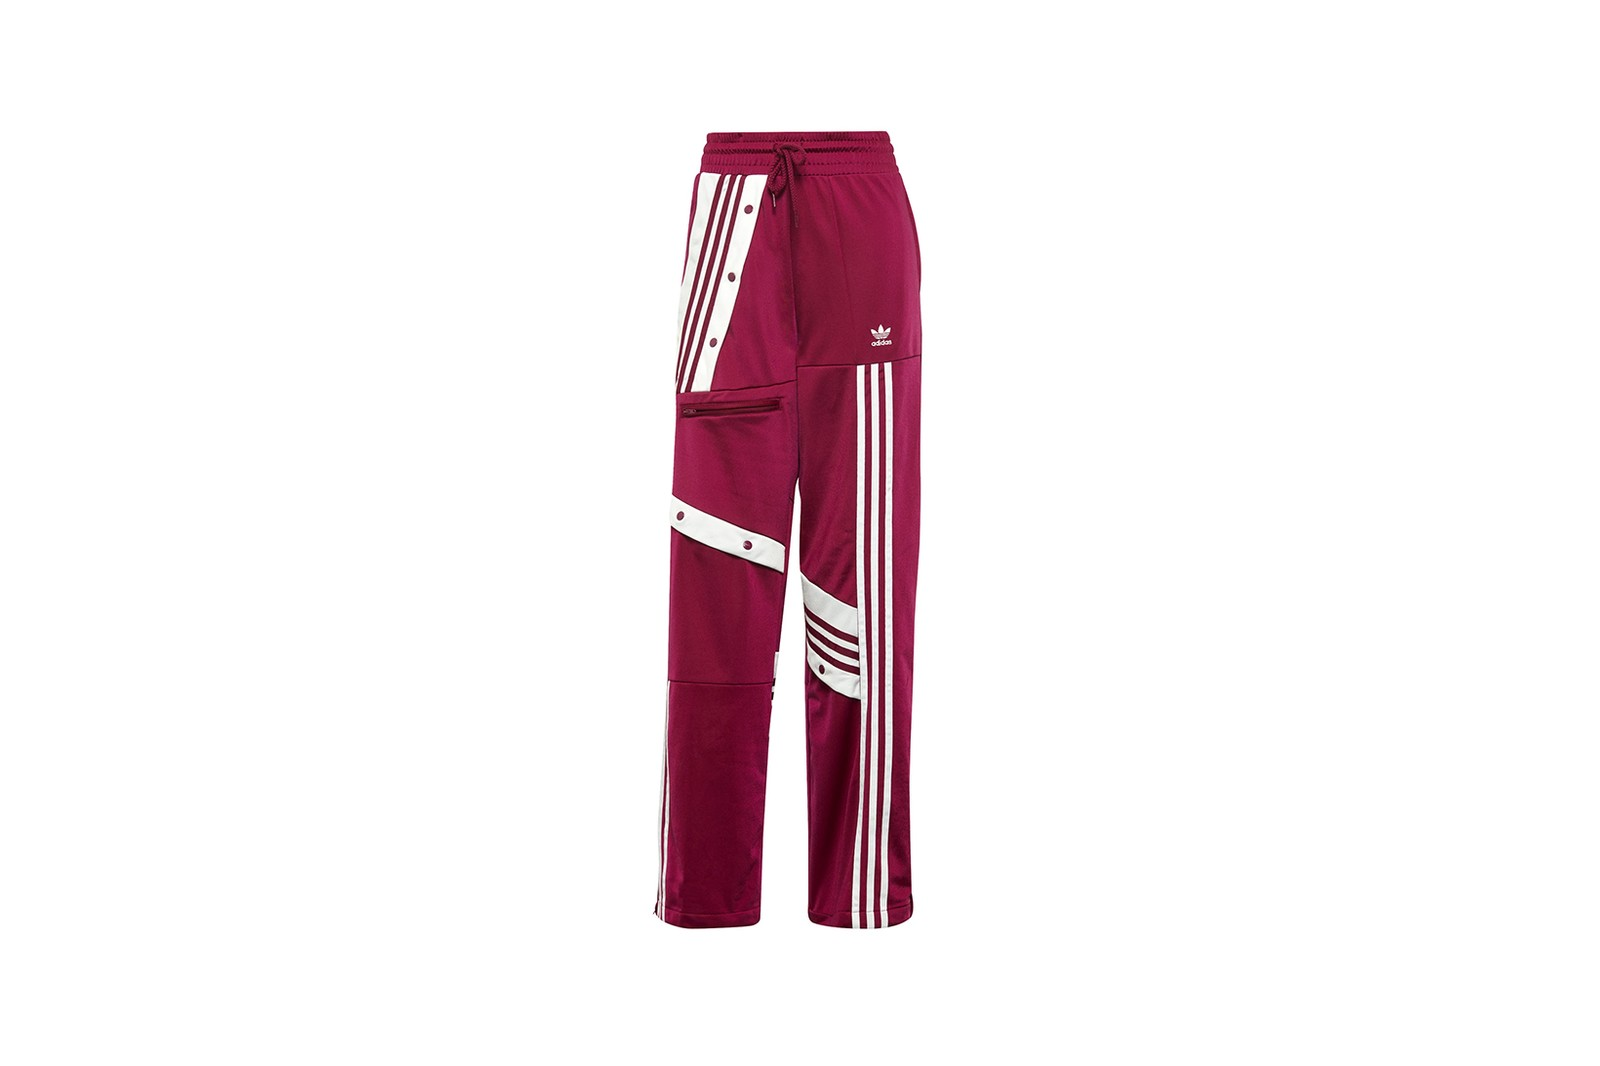 best tracksuit sets jackets pants adidas yellow balenciaga handbag yeezy boost sneakers juicy couture velour maroon black chunky boots